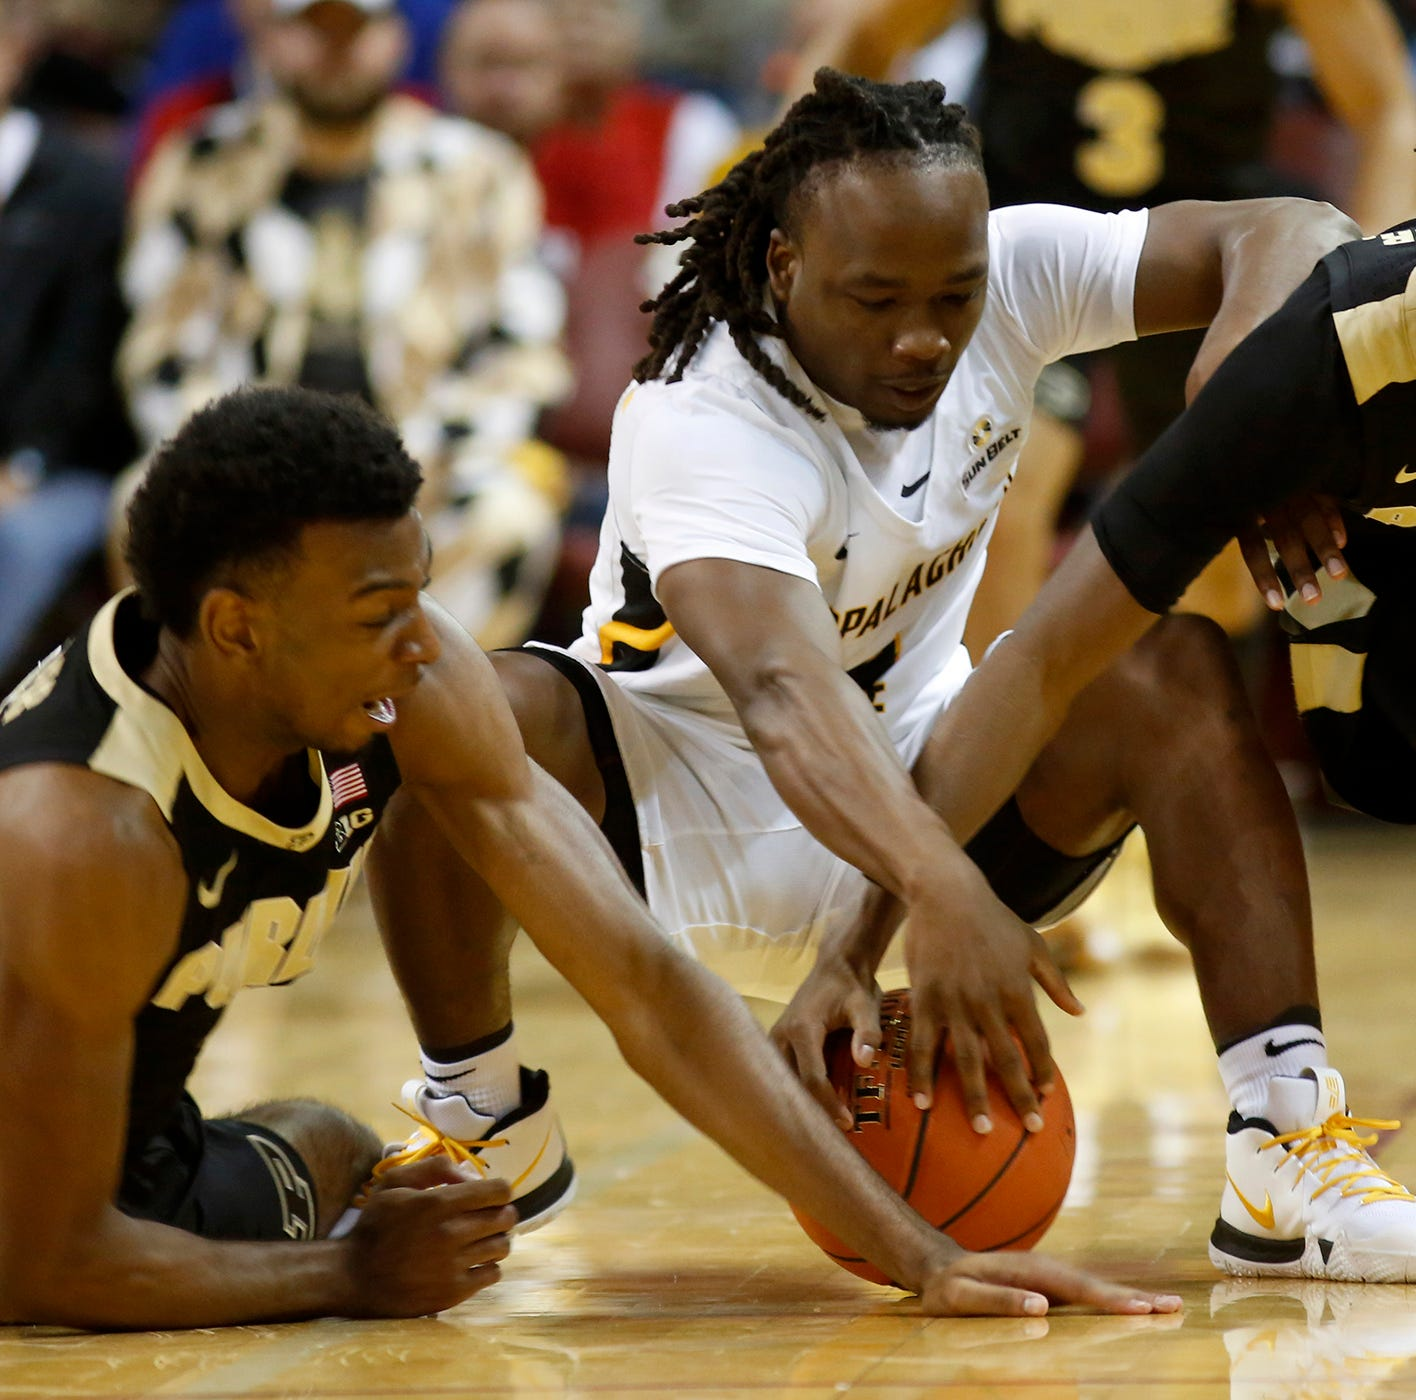 Purdue basketball's defense set the opening tone in victory over Appalachian State